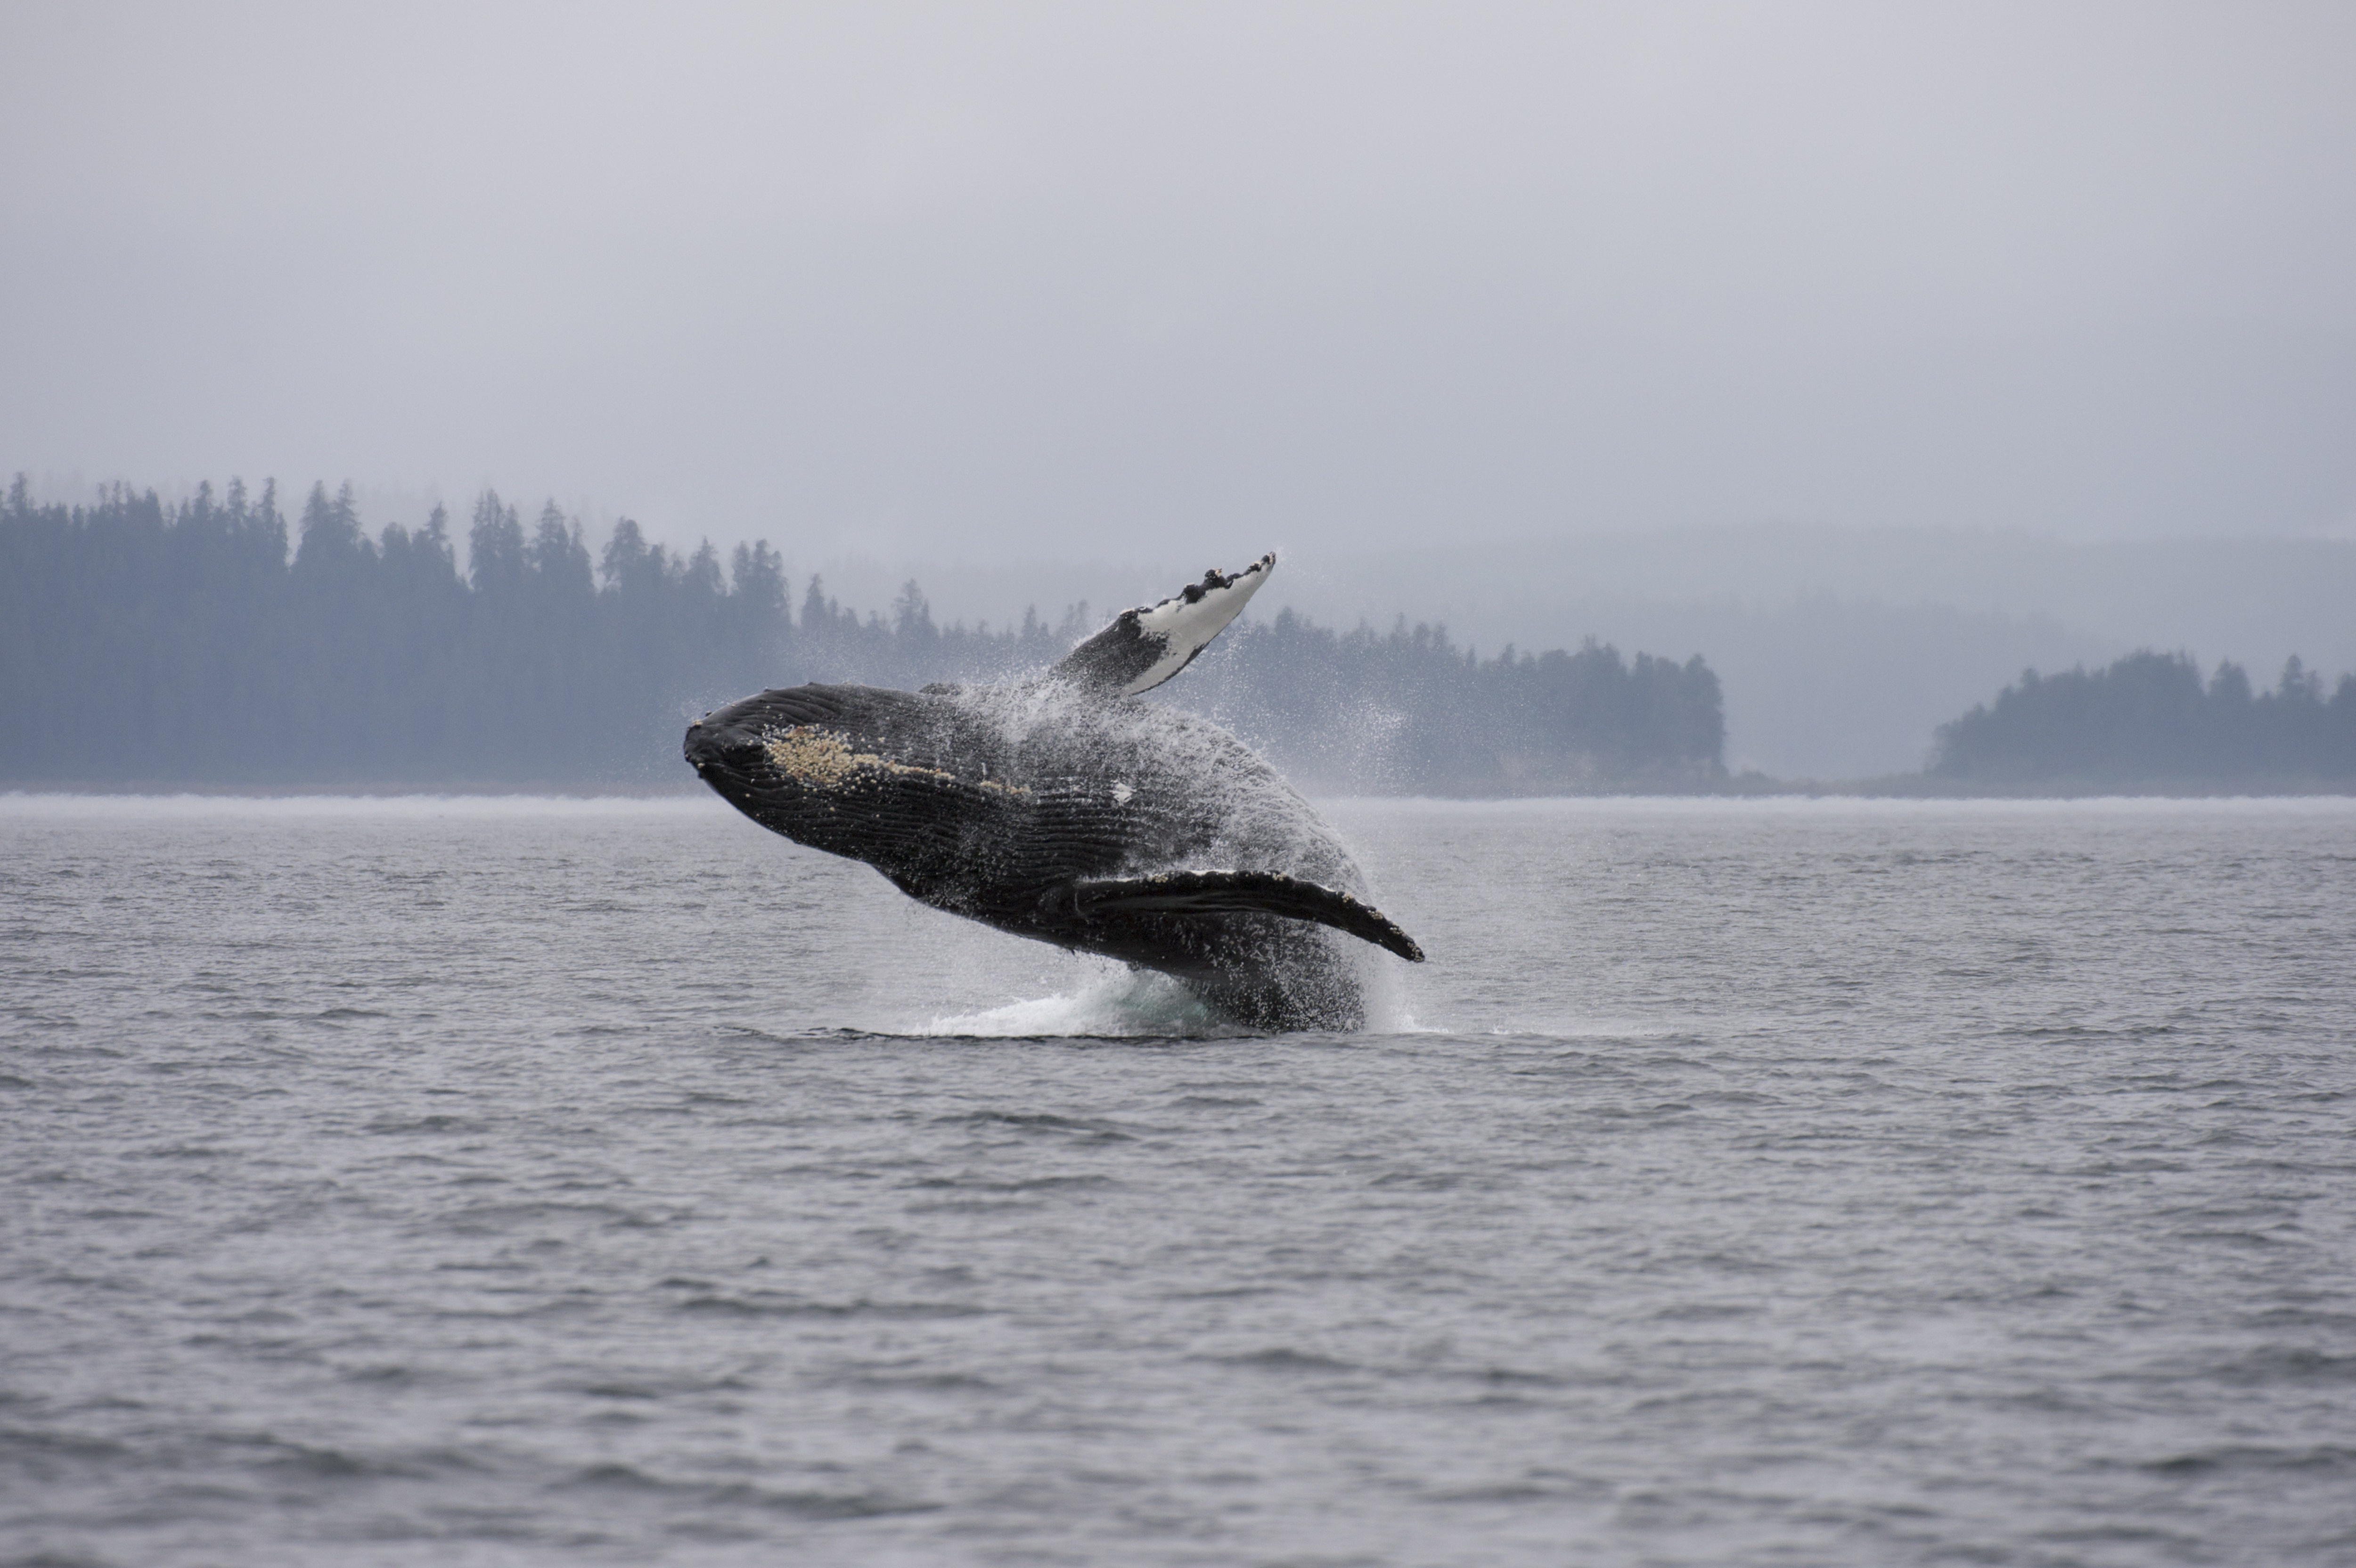 A Humpback whale in the Tongass National Forest, Southeast Alaska in 2013.